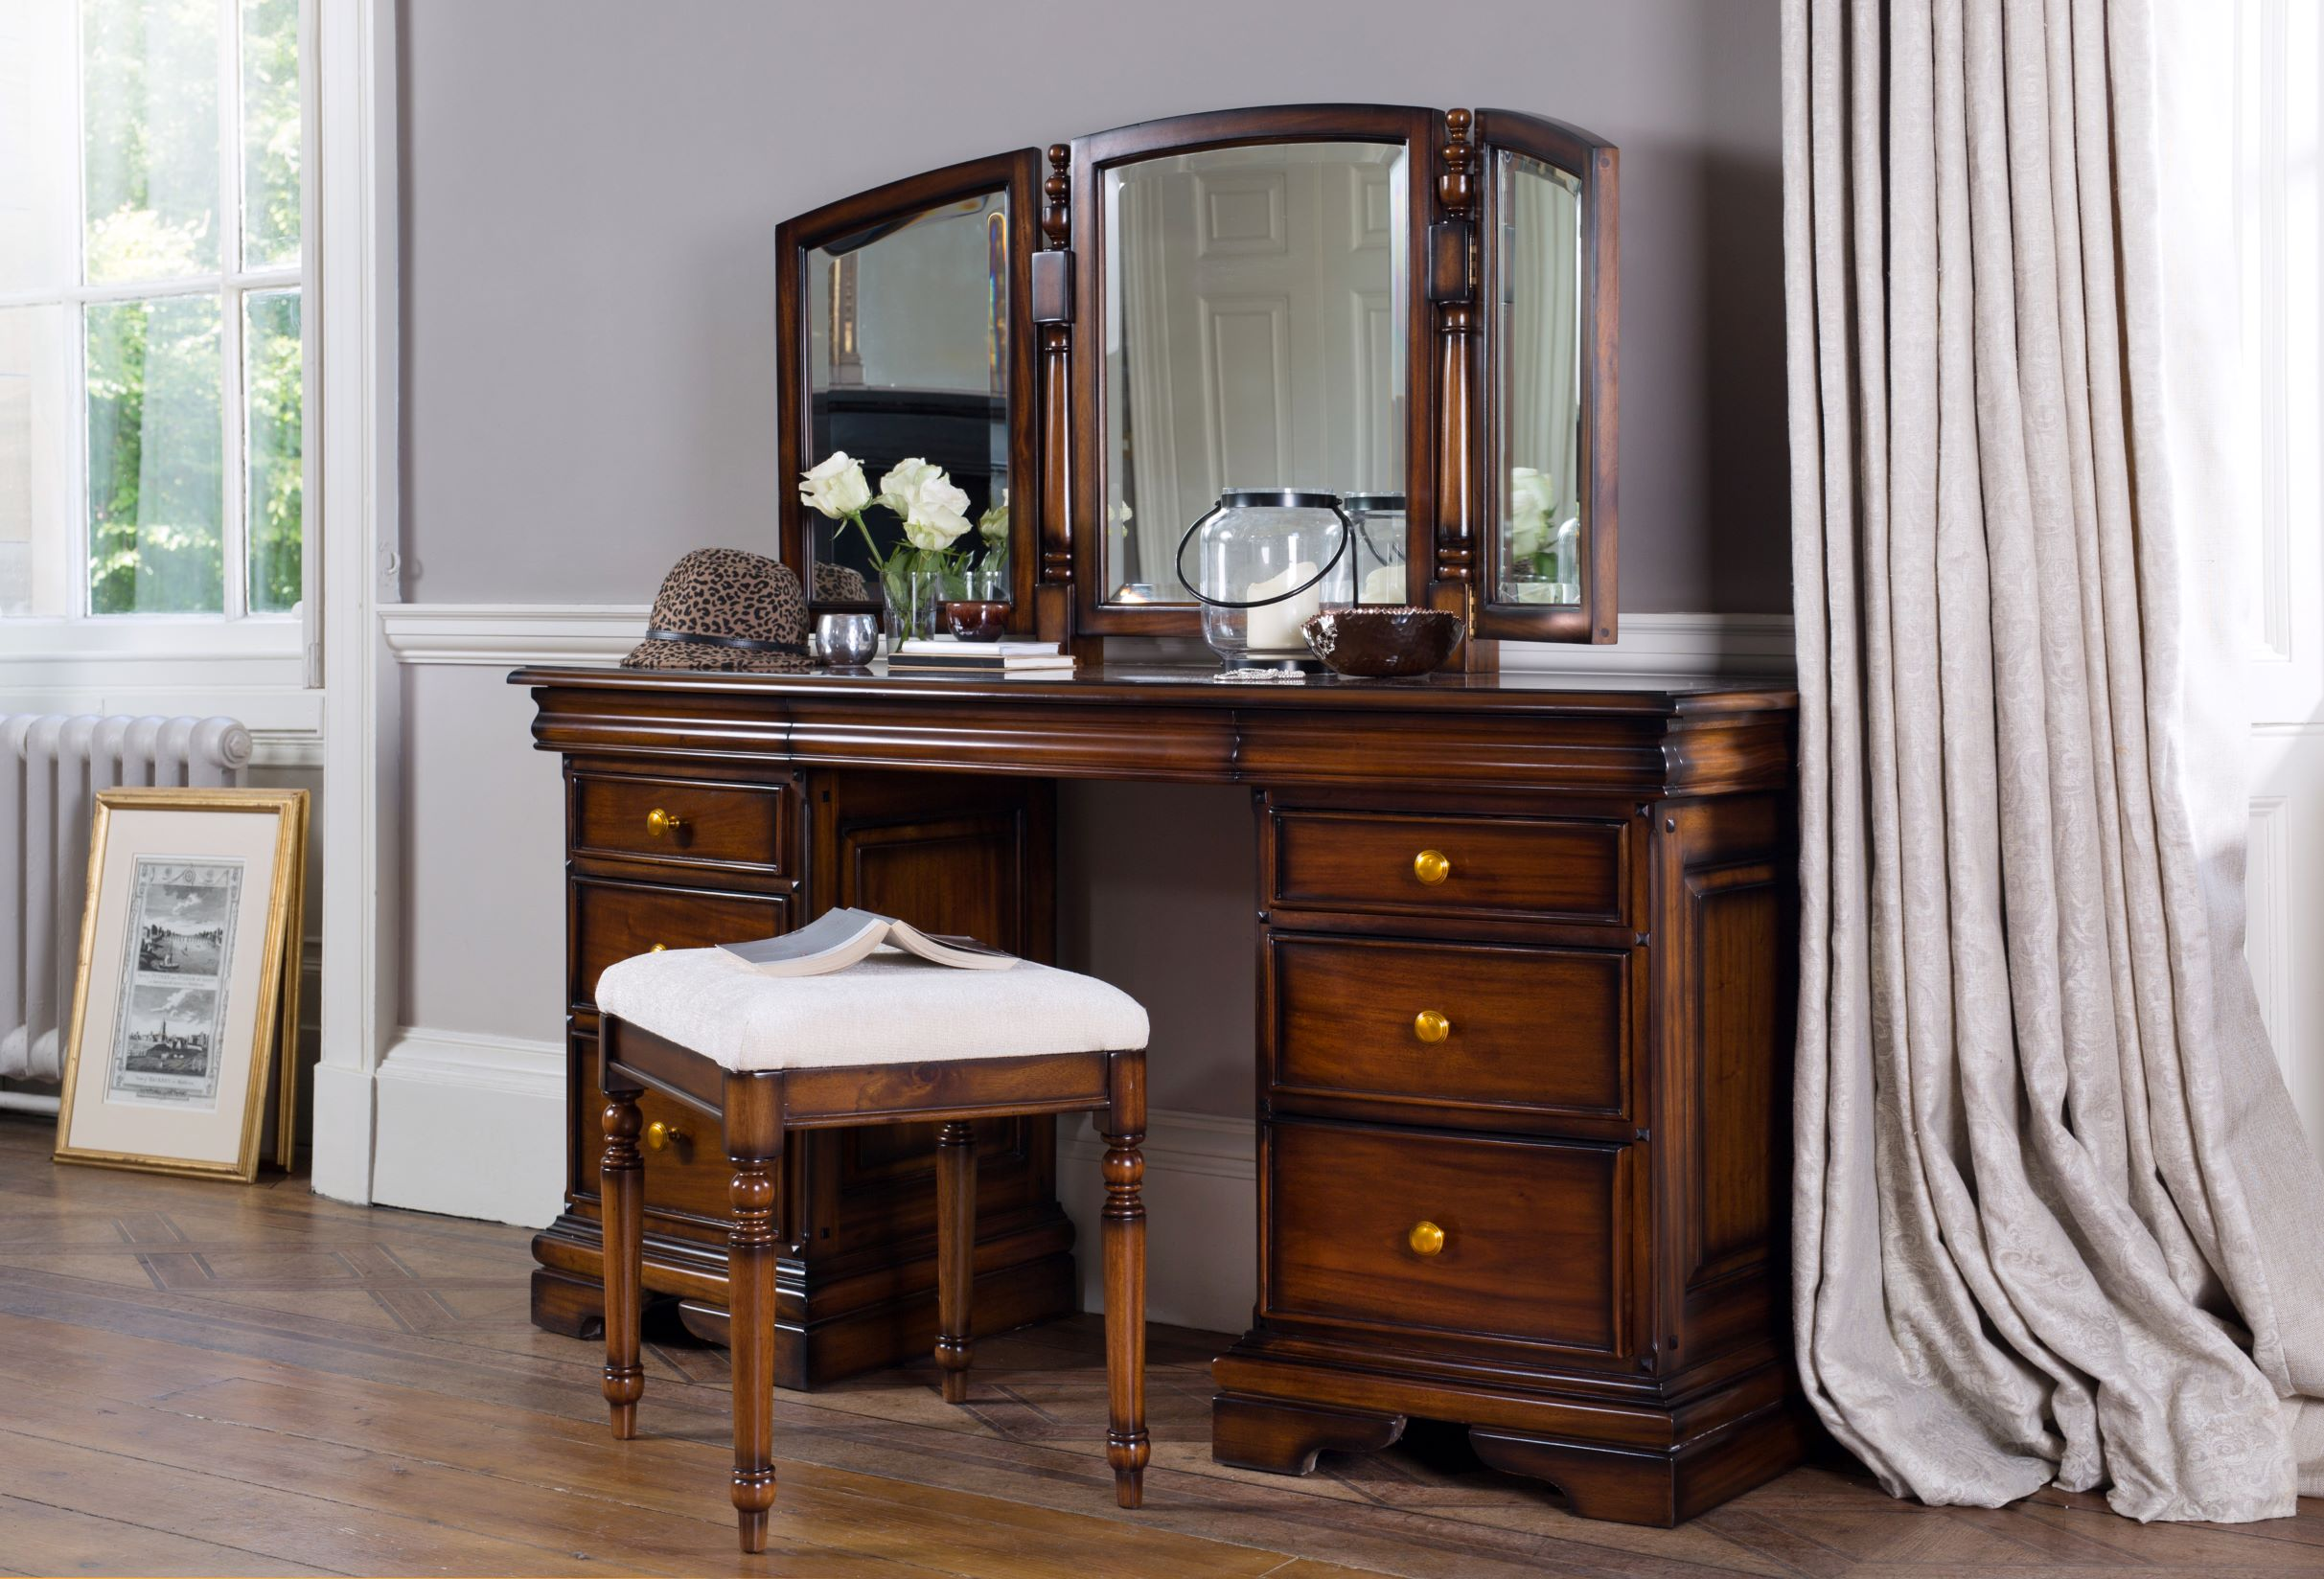 NORMANDIE DRESSING TABLE - L120cm x D50cm x H141cm